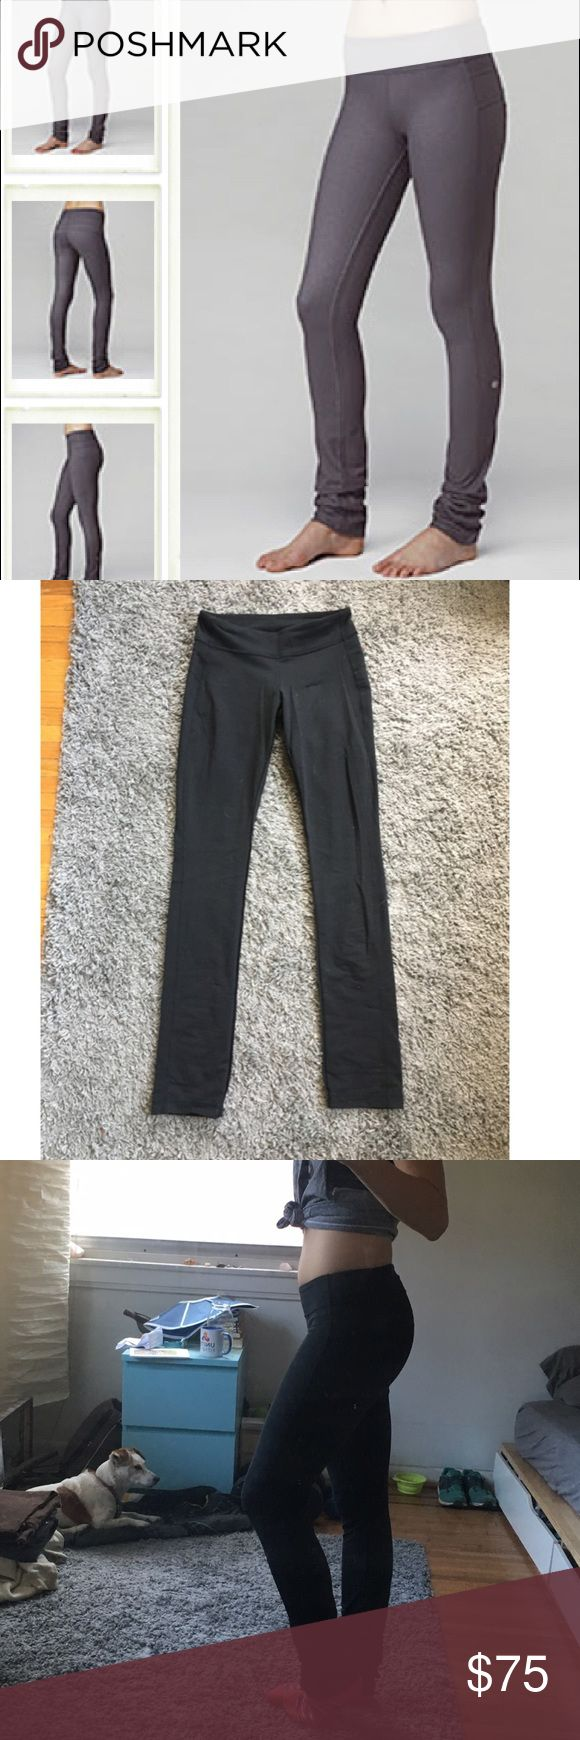 BLACK lululemon Energize Pant Black (first photo is a stock photo, it's hard to photograph black pants!) lululemon Energize Pants. Straight Leg & Long. Super comfy and flattering- your legs look miles long & they're great butt pants ;) Like new! Pocket on back. lululemon athletica Pants Leggings